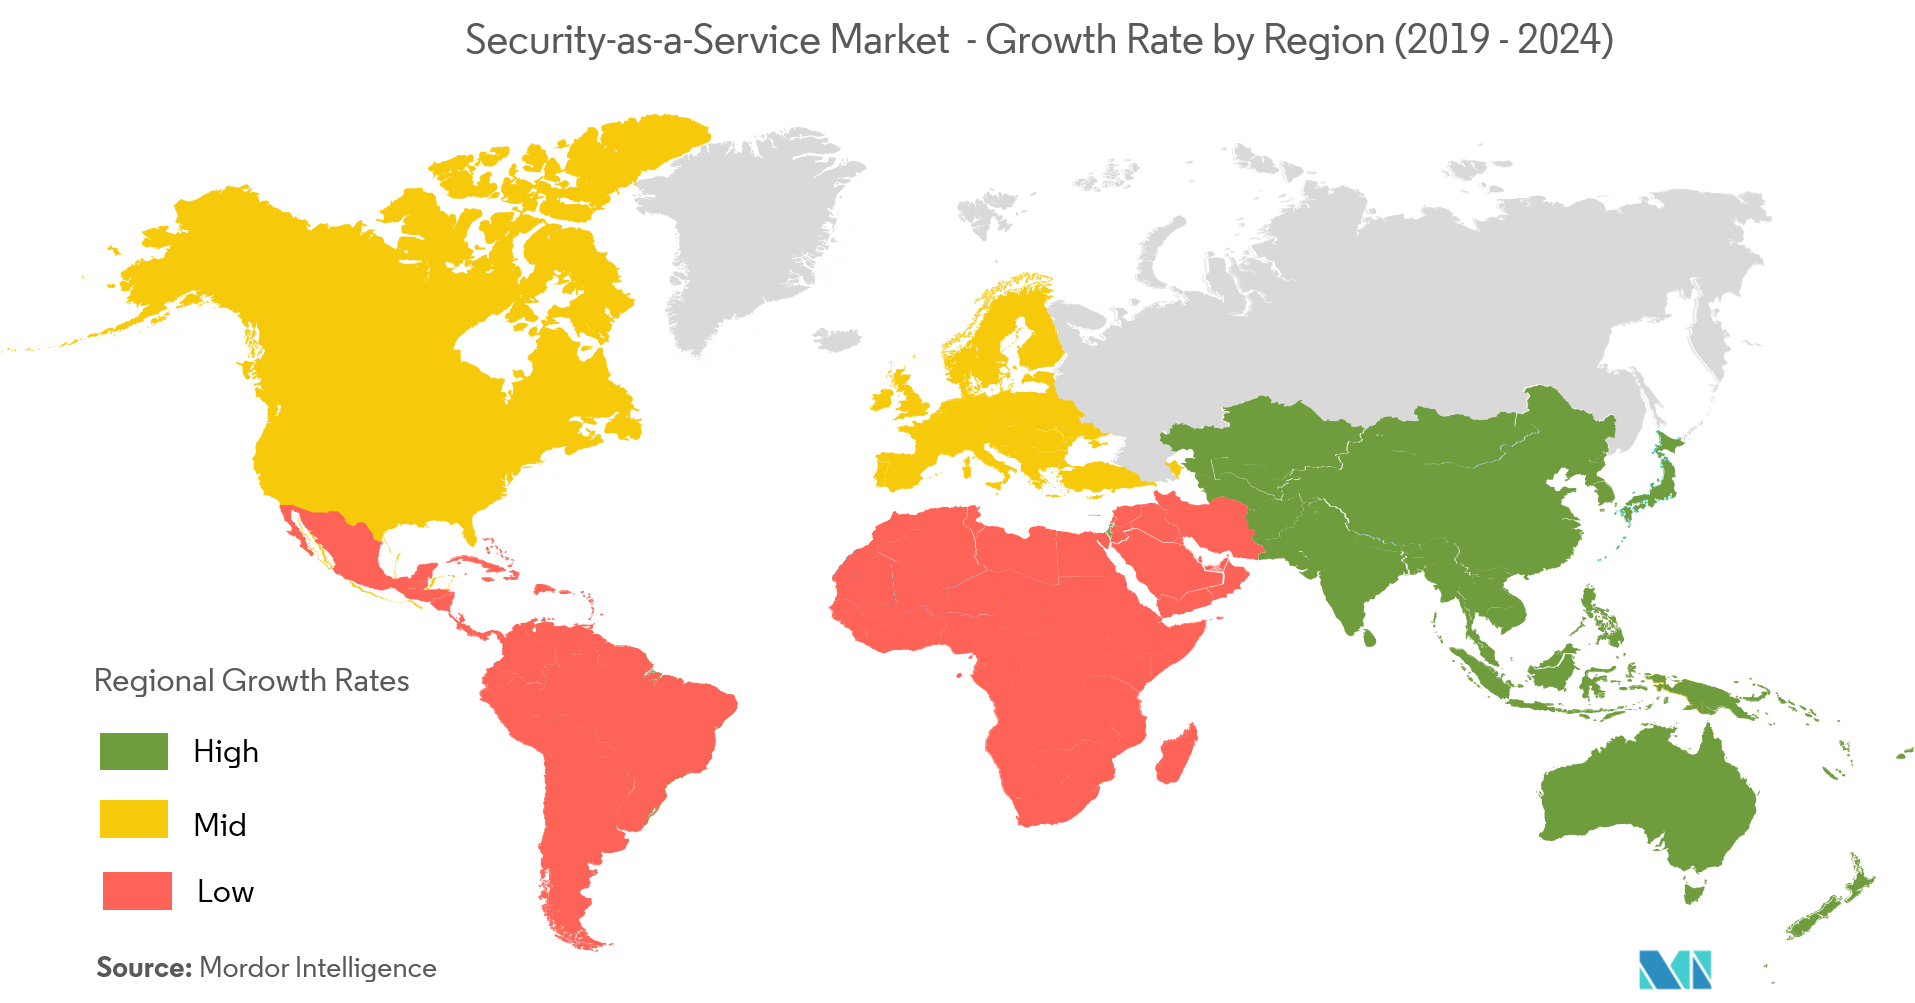 cyber security as a service market